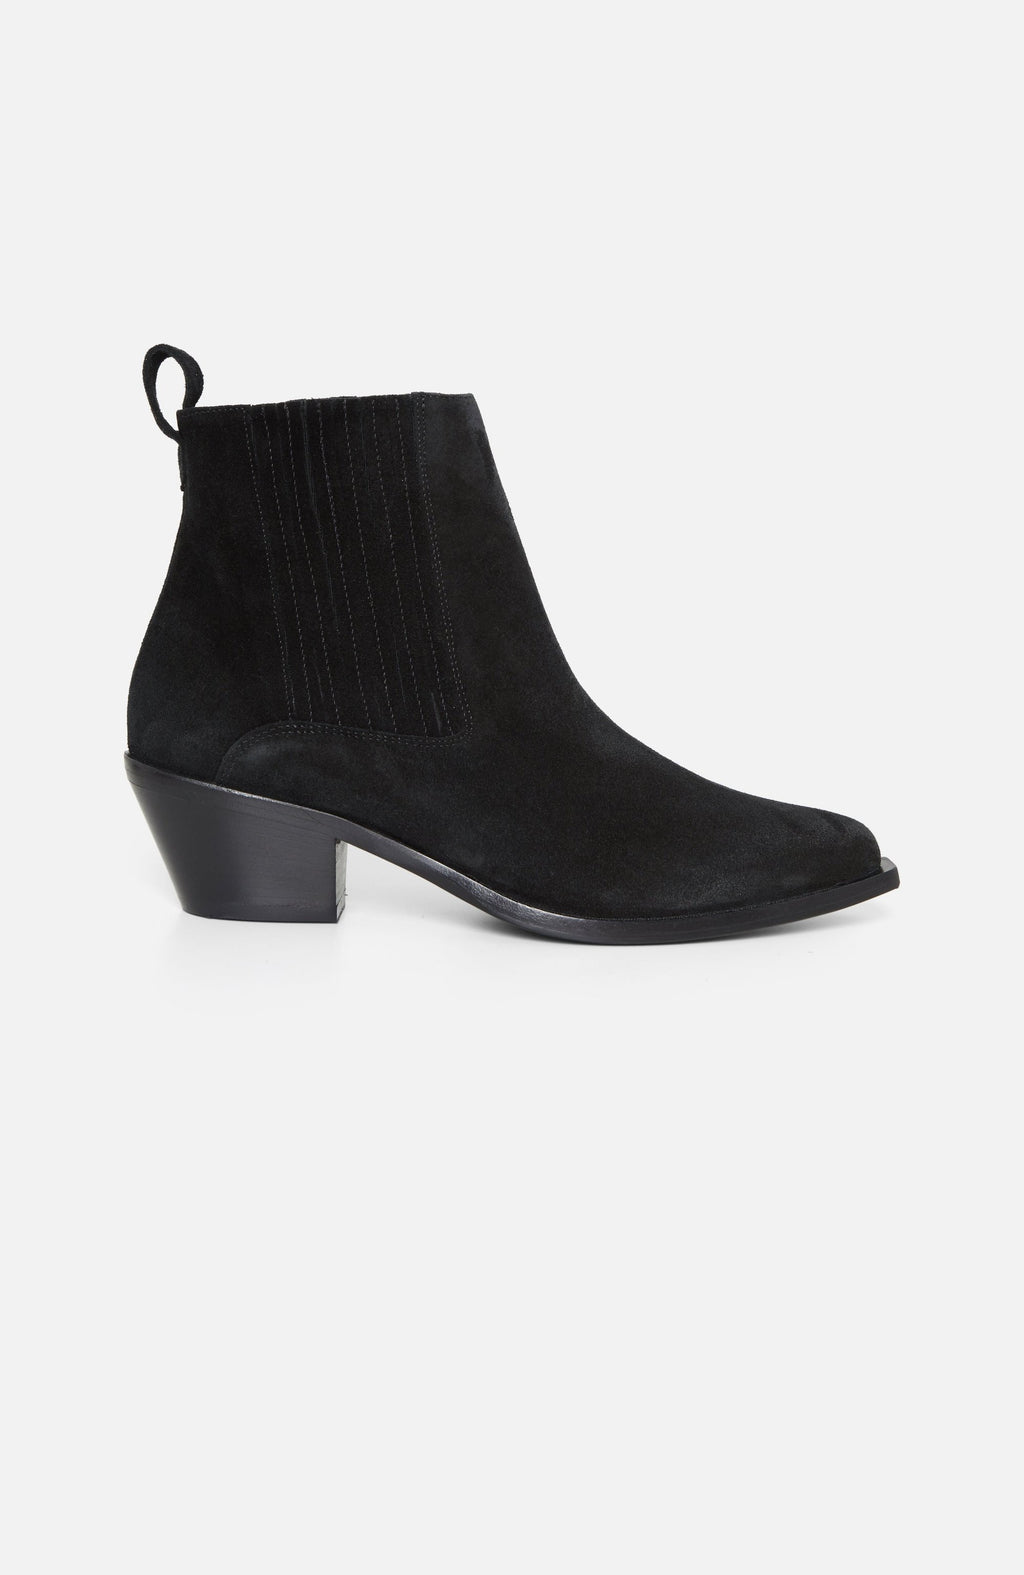 Atelier Mercadal Black Suede Ankle Boots